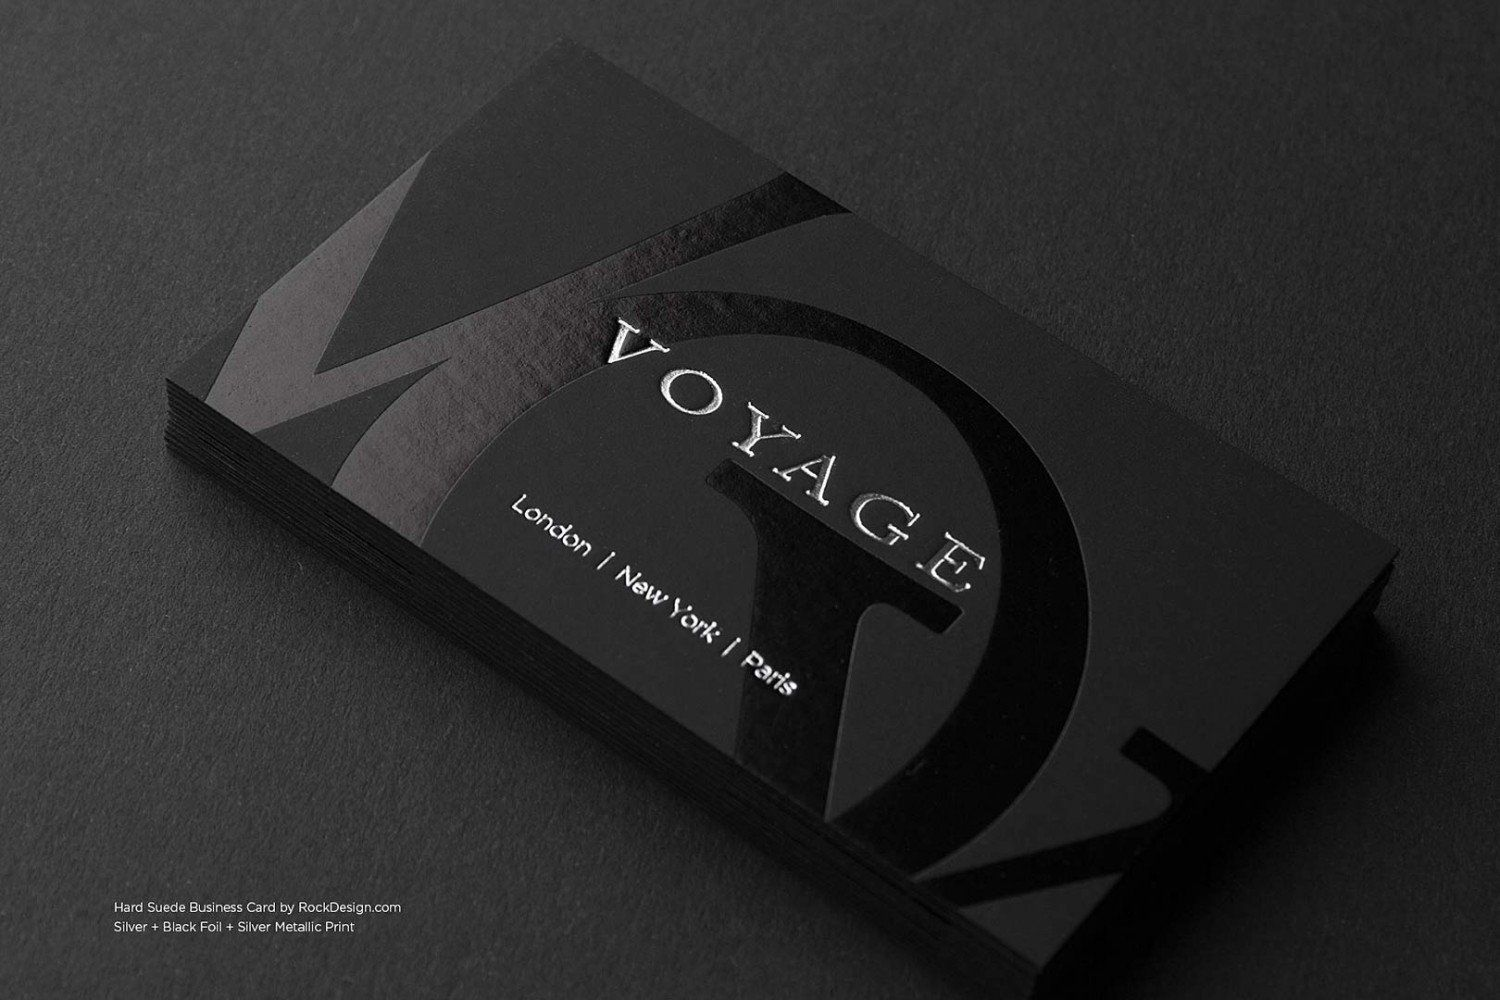 Hard Suede Business Cards Graphic Design Business Card Printing Business Cards Suede Business Cards